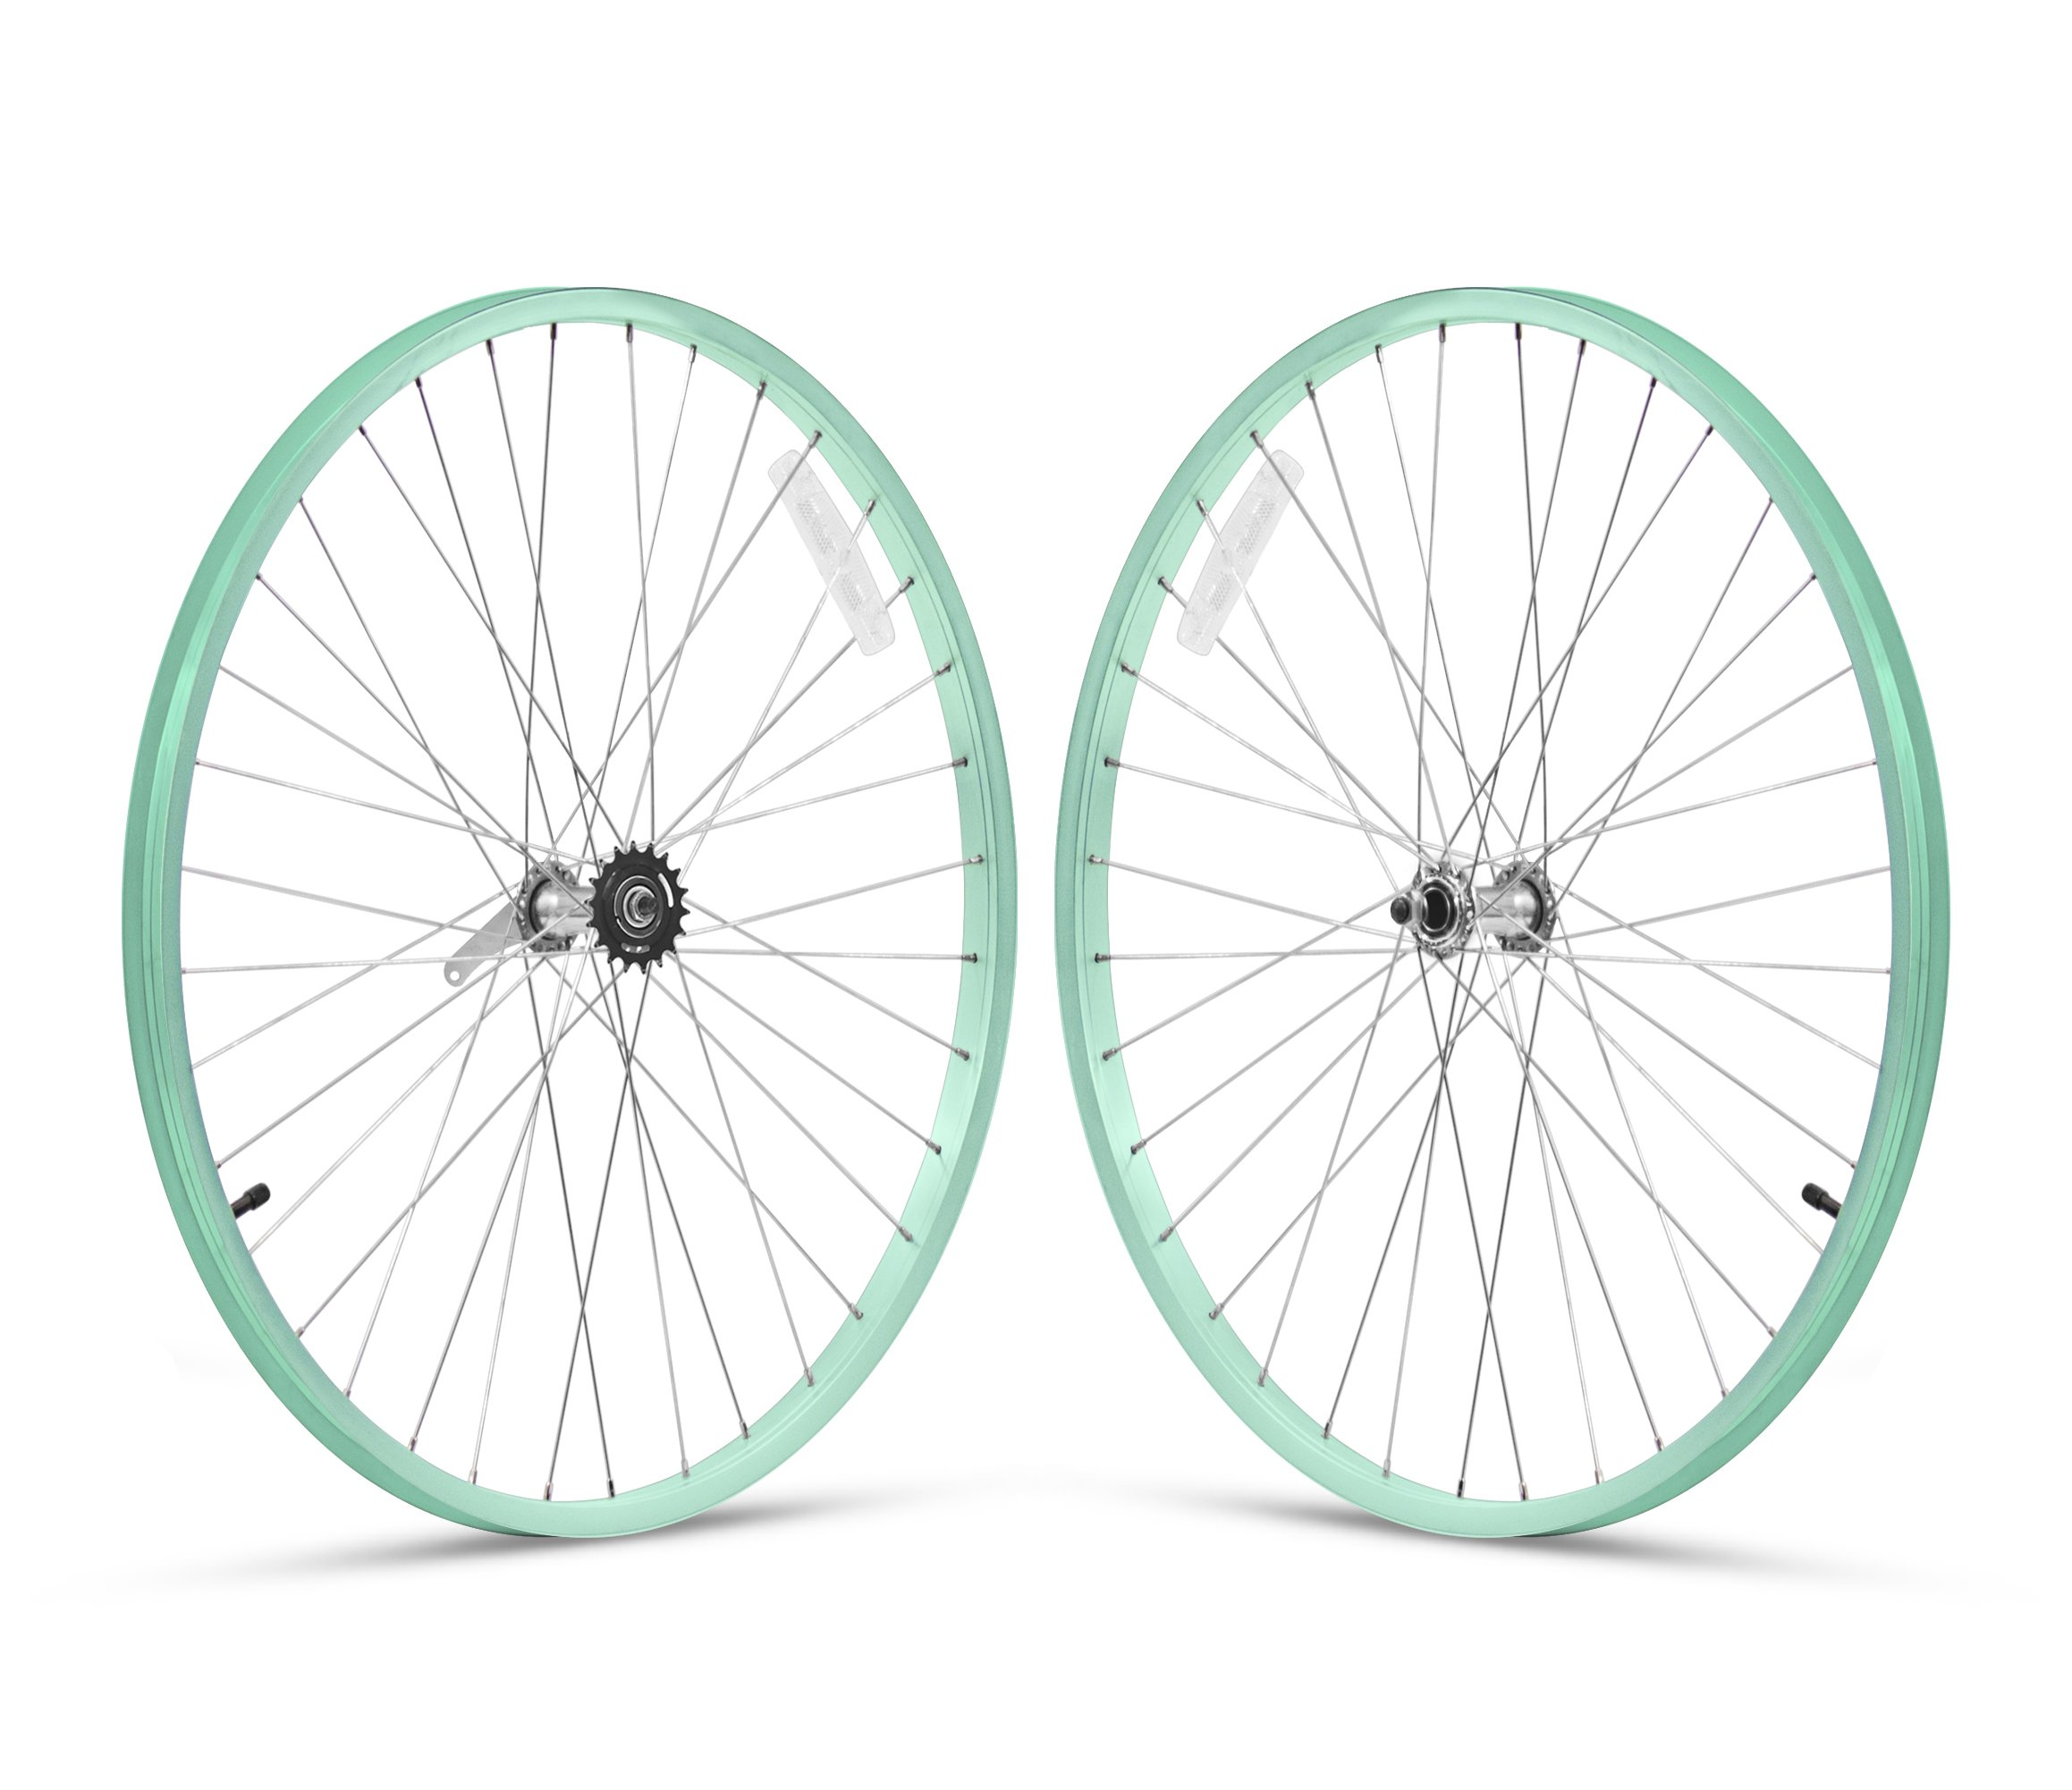 Firmstrong 1-Speed Beach Cruiser Bicycle Wheelset, Front/Rear, Mint Green, 26''